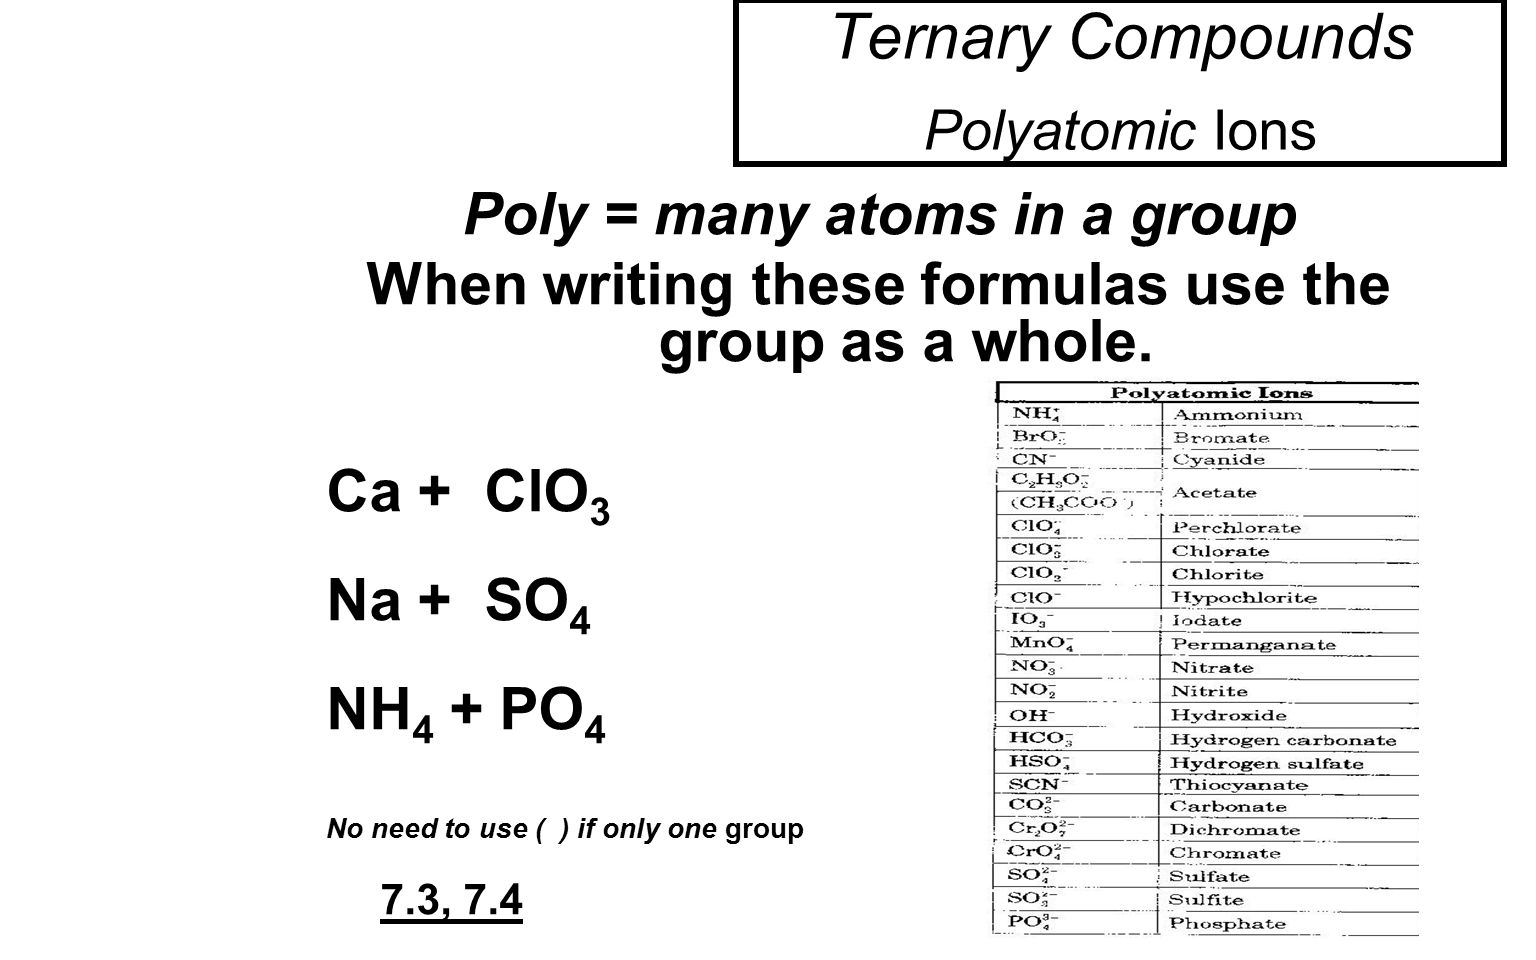 Binary Ionic Molecular Compounds Worksheet A Side 1